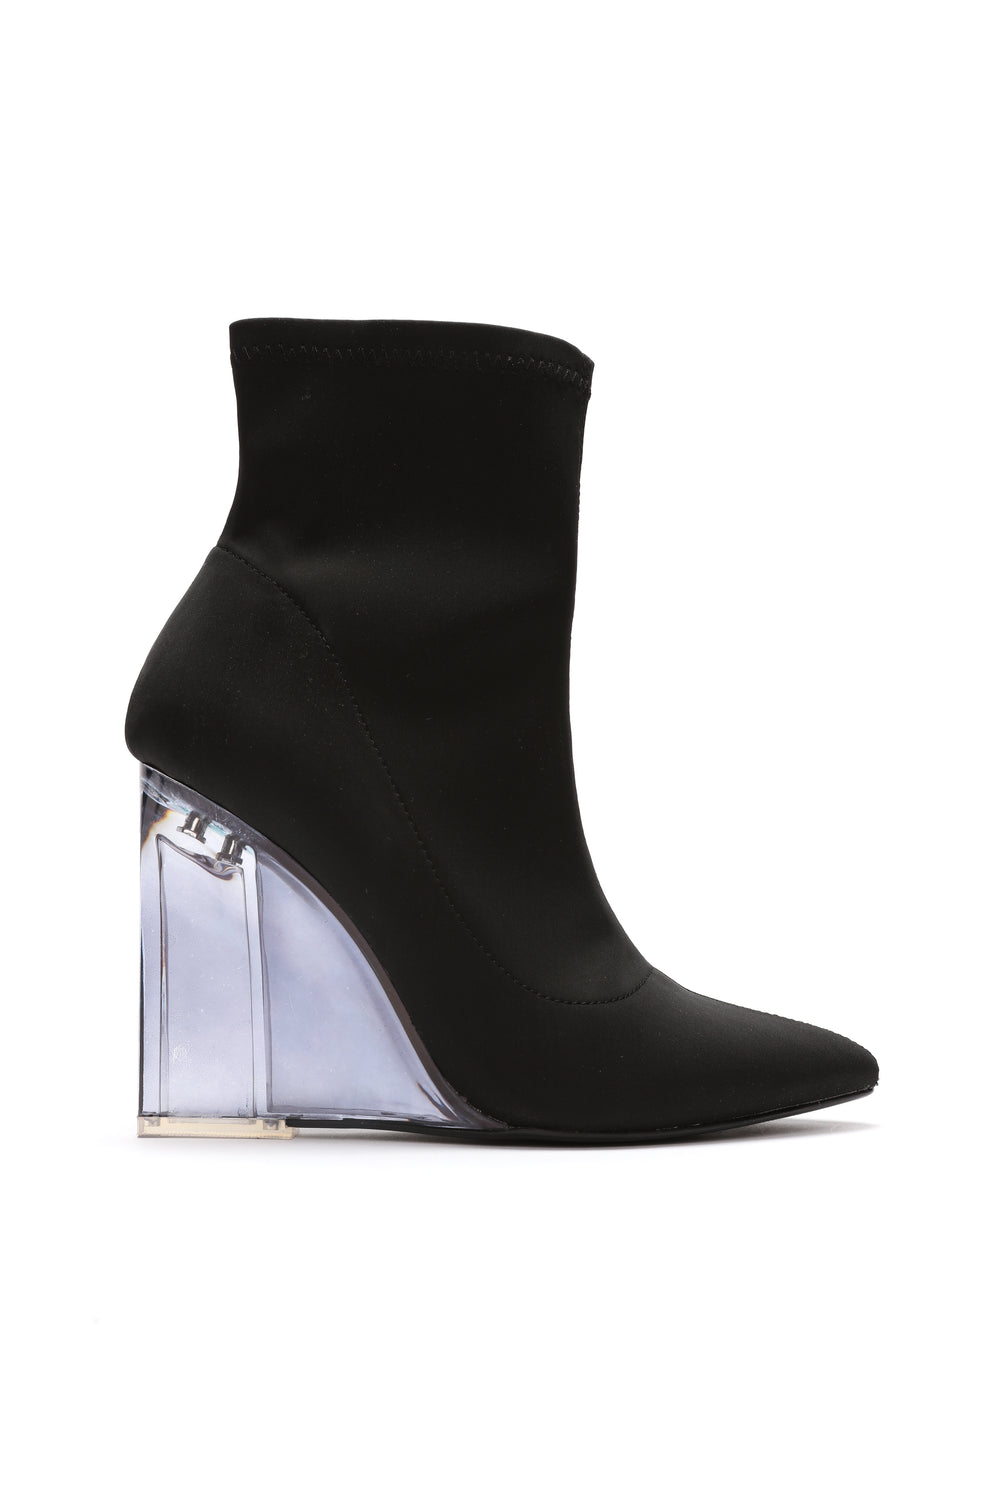 Out Of Line Bootie - Black